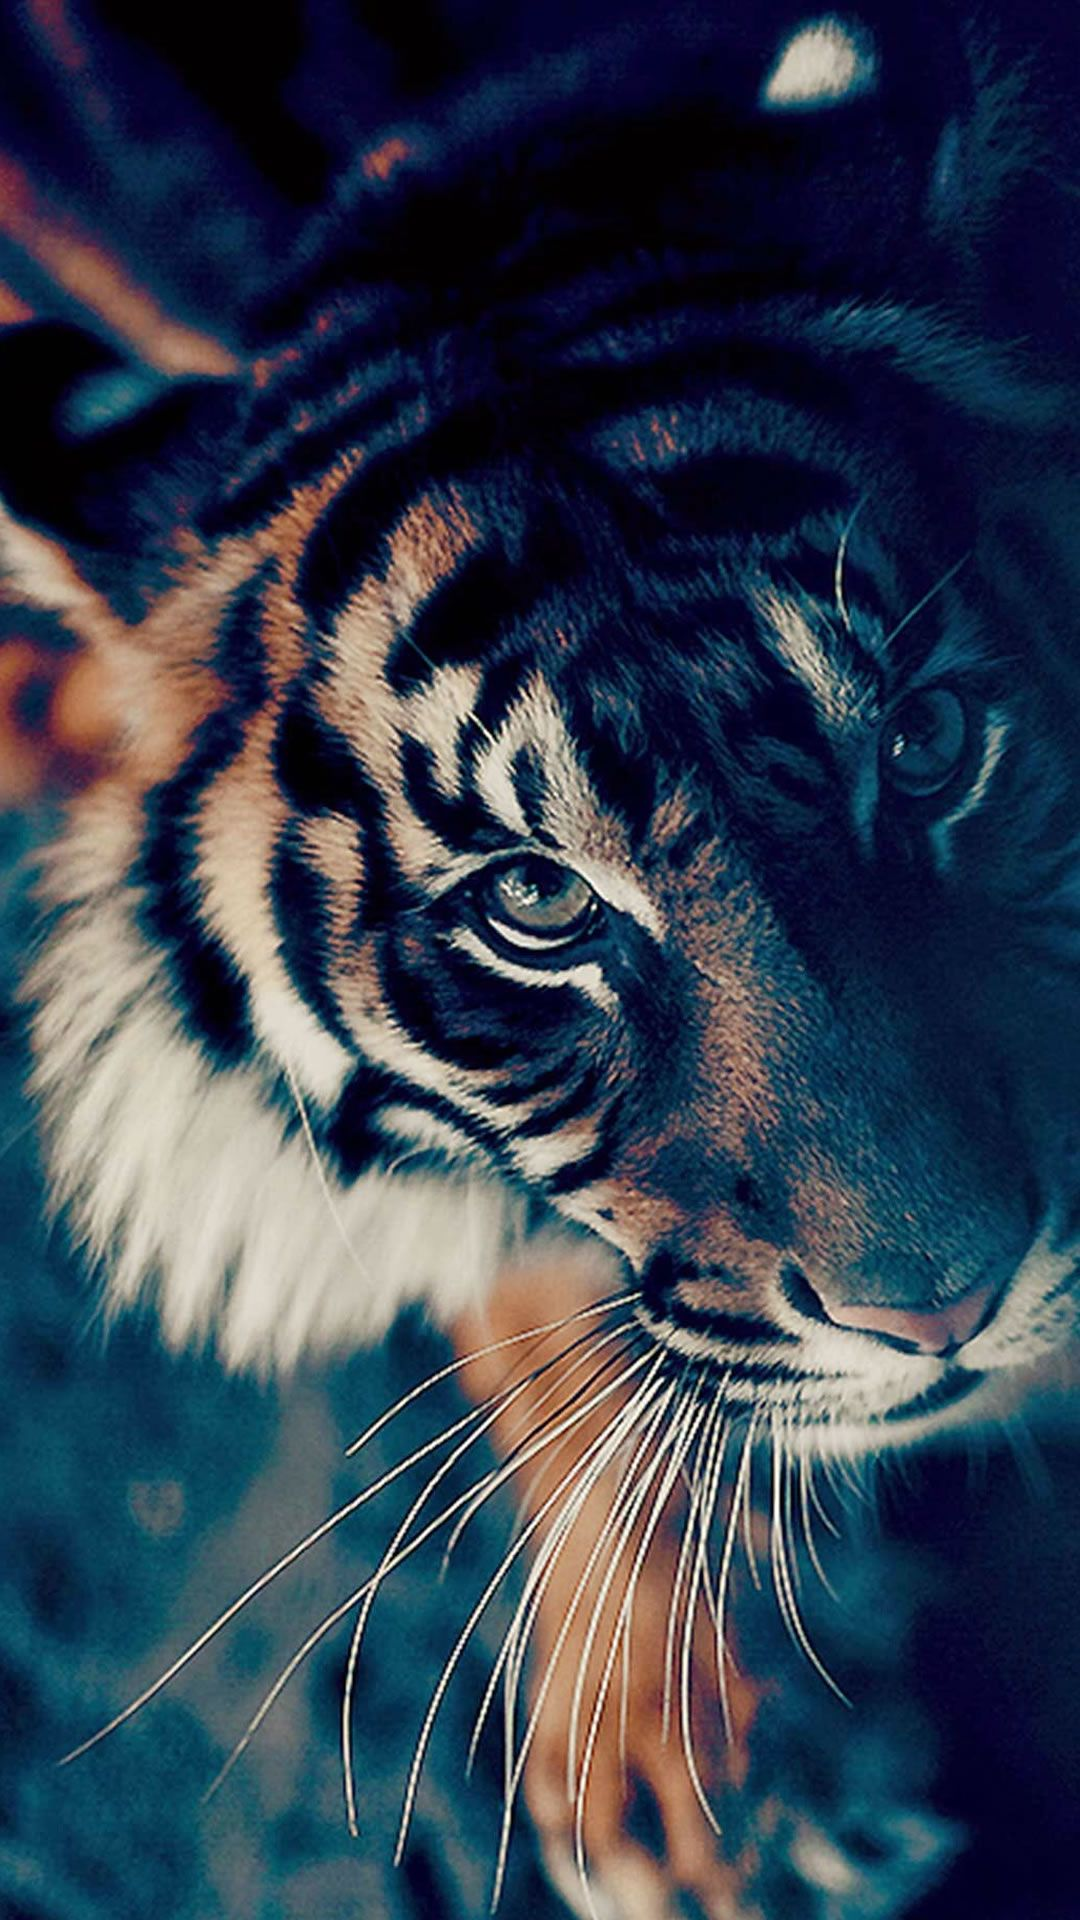 bengal tiger closeup iphone 6 wallpaper | animals | pinterest